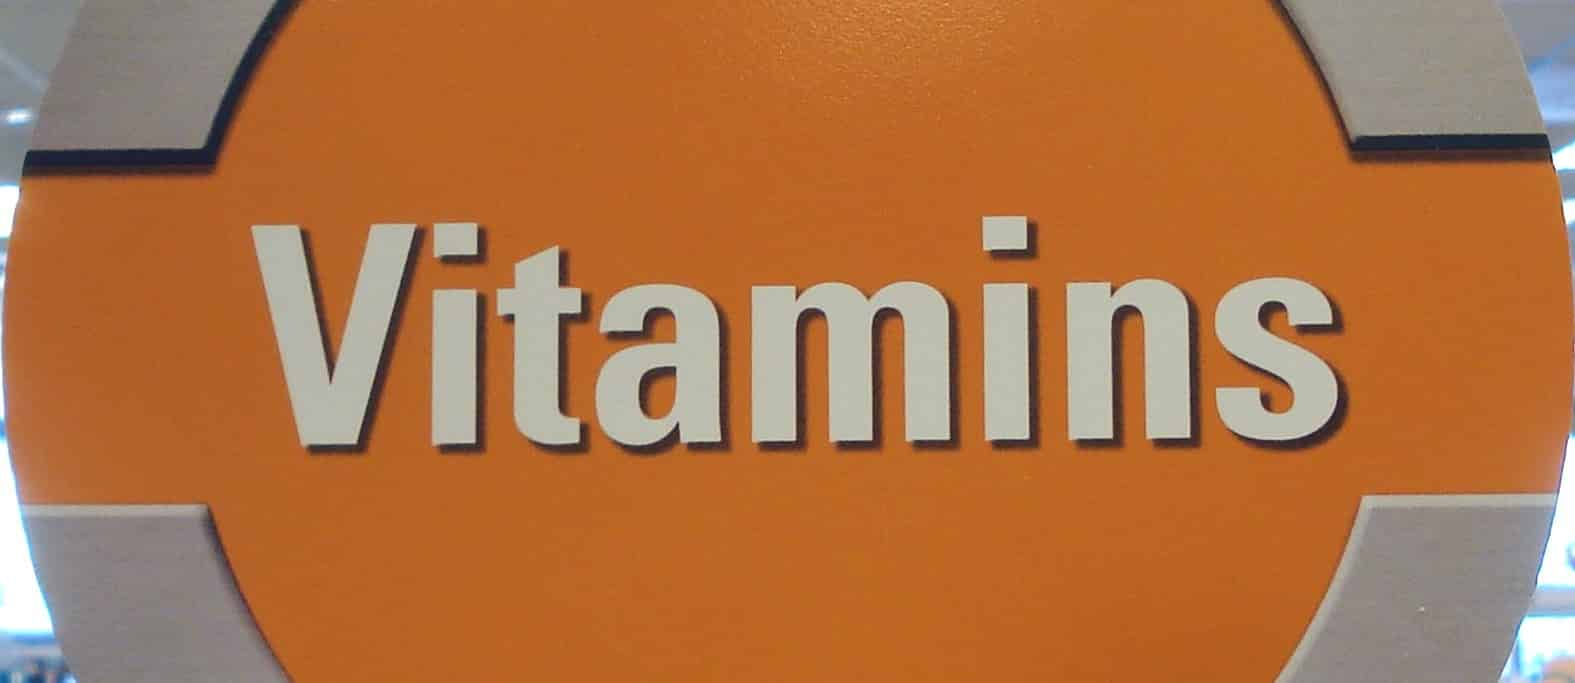 Should We Take a Multivitamin?